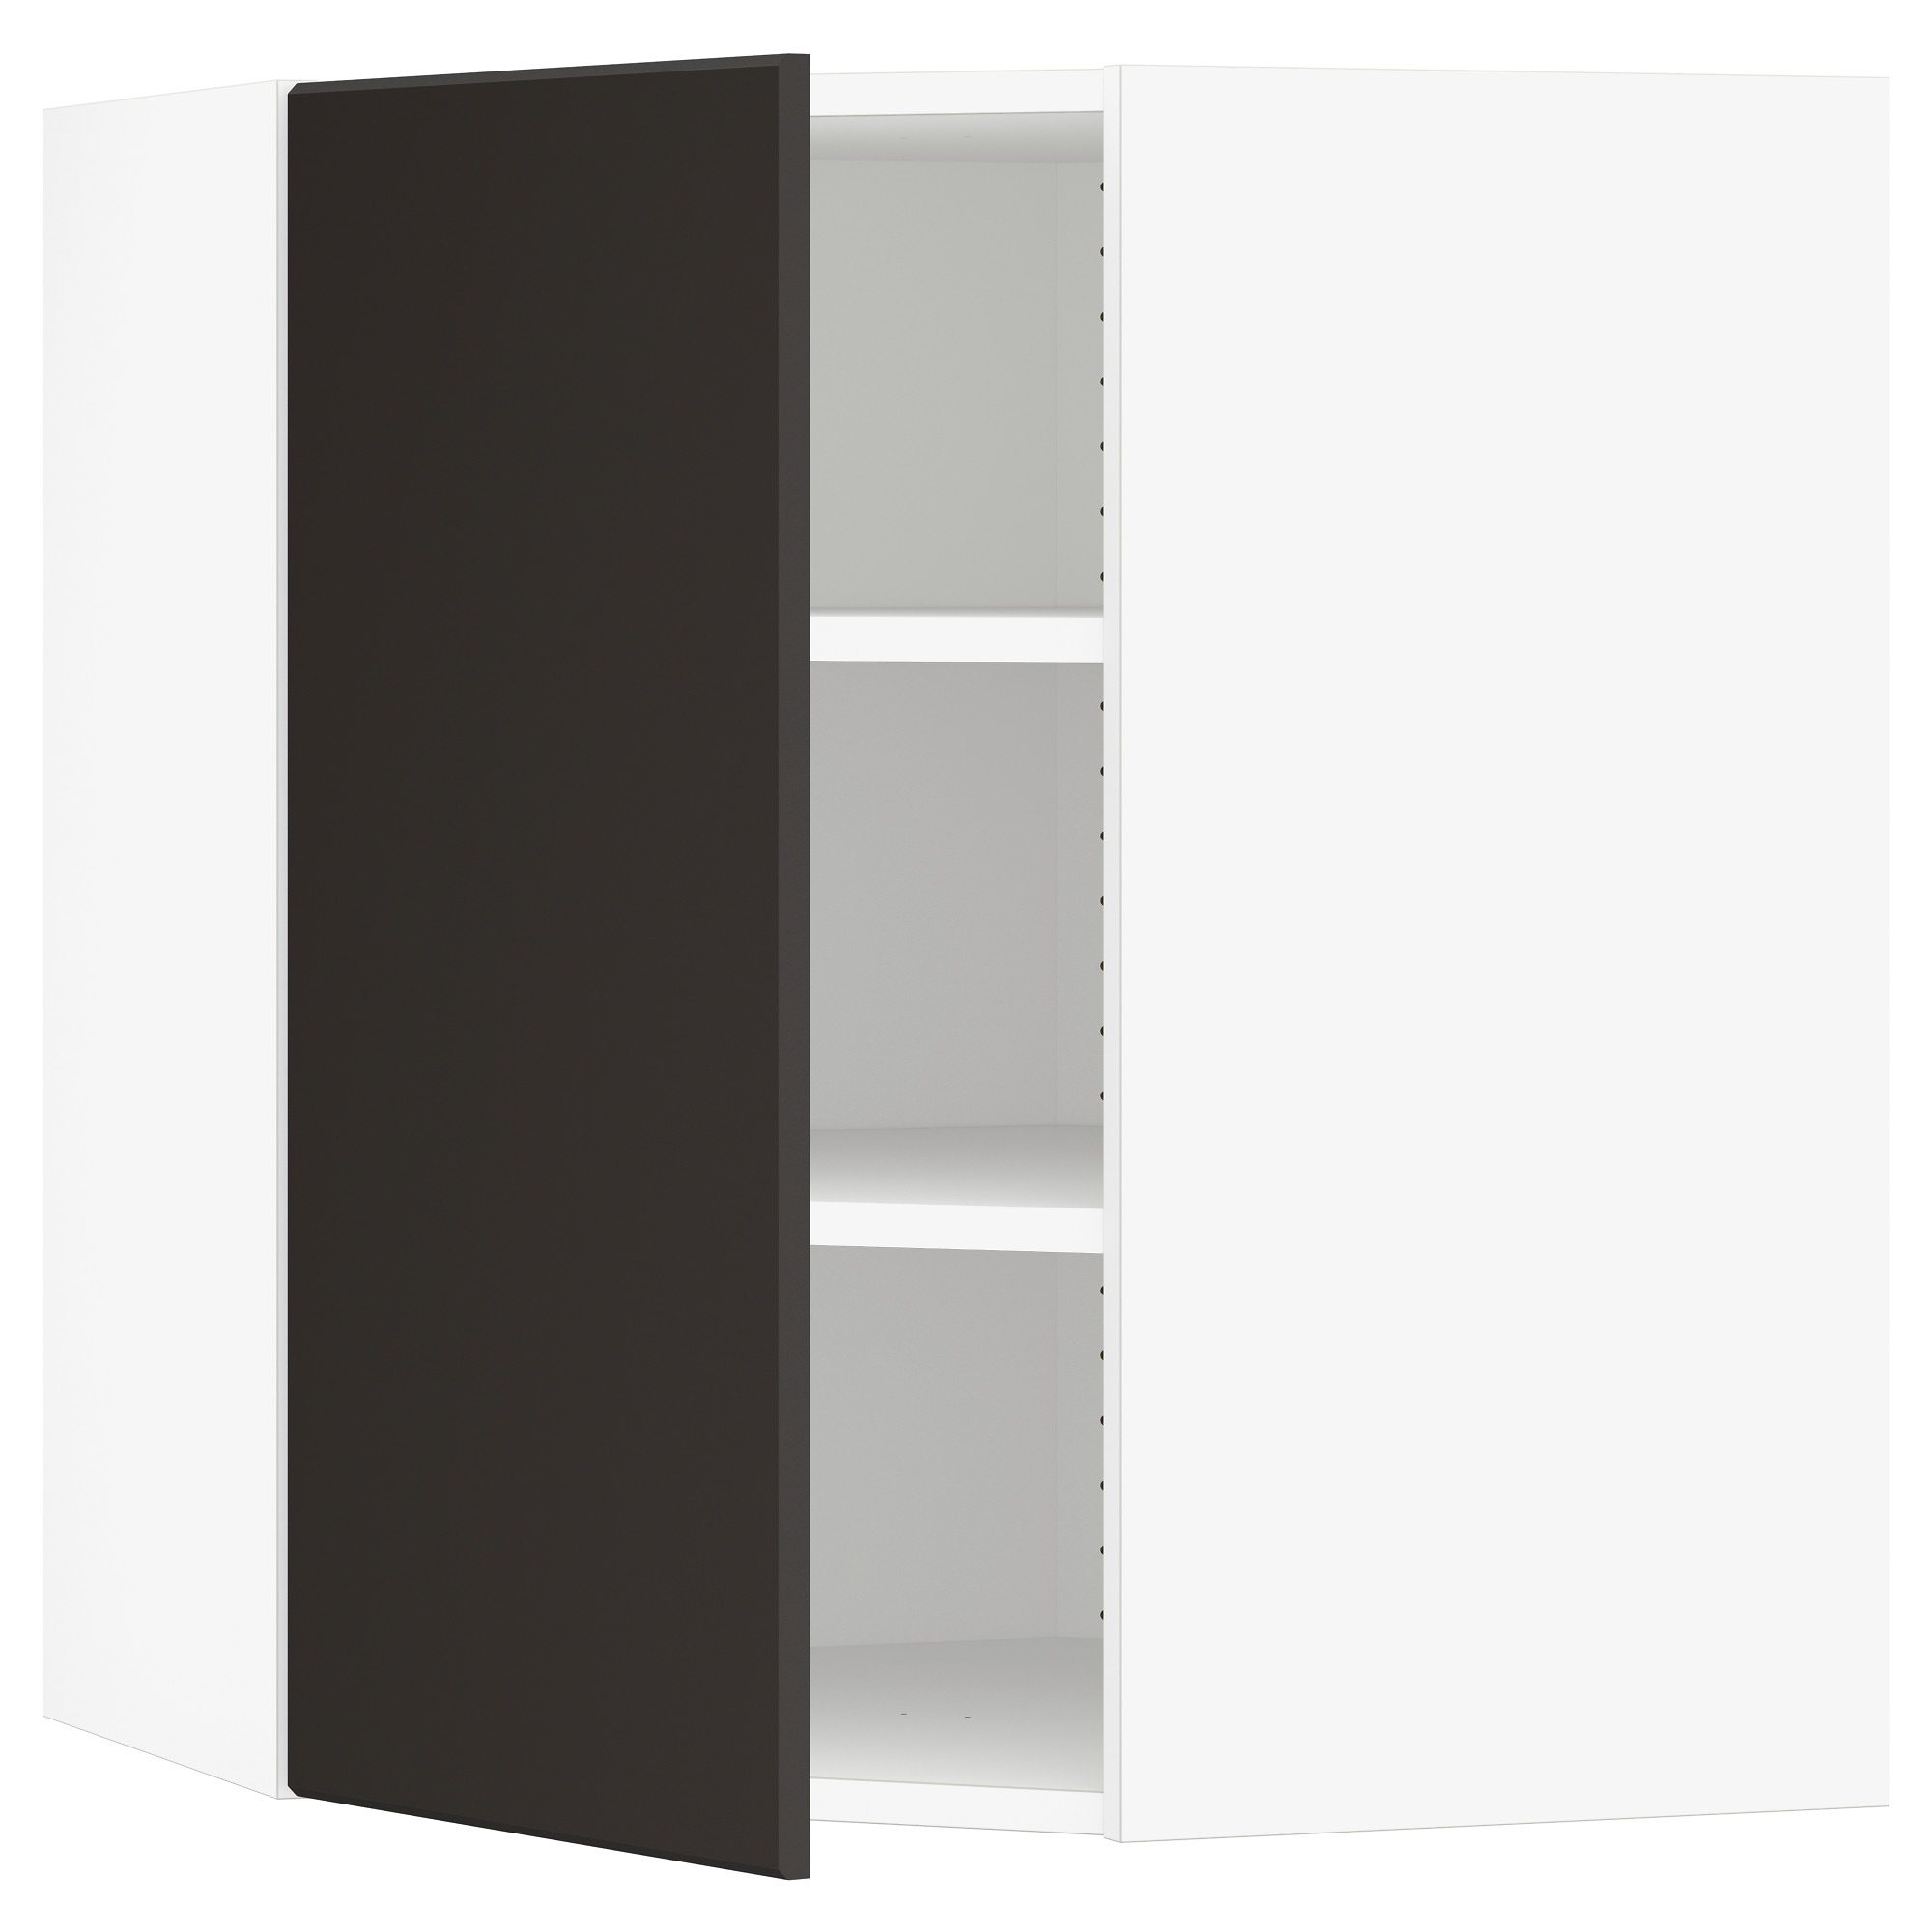 Color birch effect black brown high gloss gray turquoise white white - Sektion Corner Wall Cabinet With Shelves Wood Effect Brown Laxarby Black Brown 26x15x30 Ikea